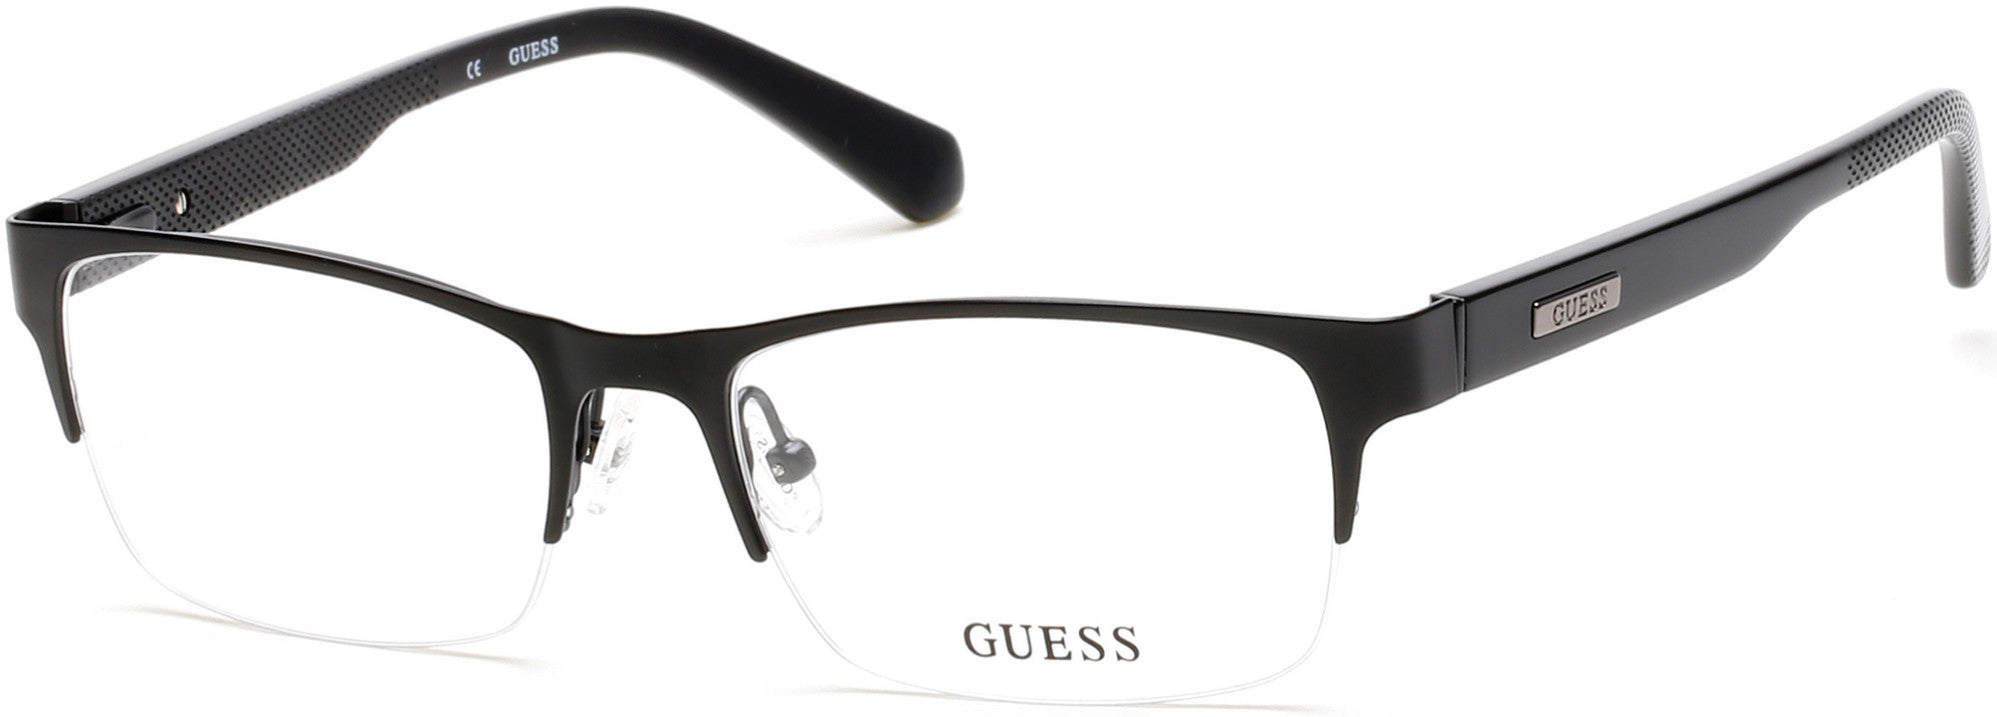 Guess GU1859 Eyeglasses 002-002 - Matte Black